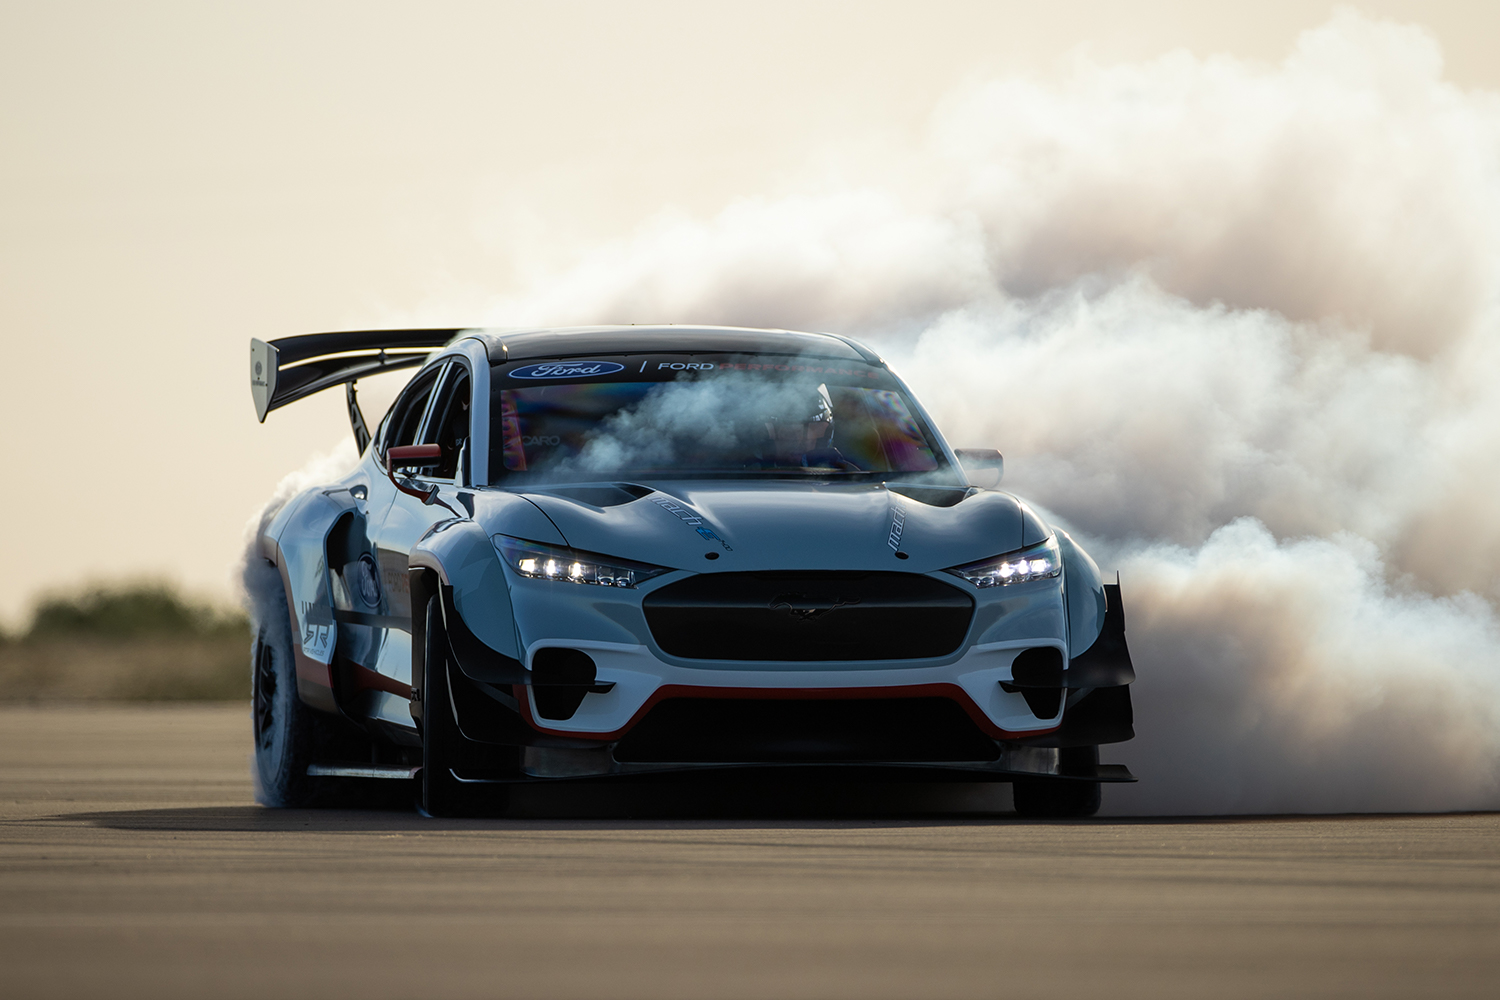 The one-off Ford Mustang Mach-E 1400 electric prototype drifting